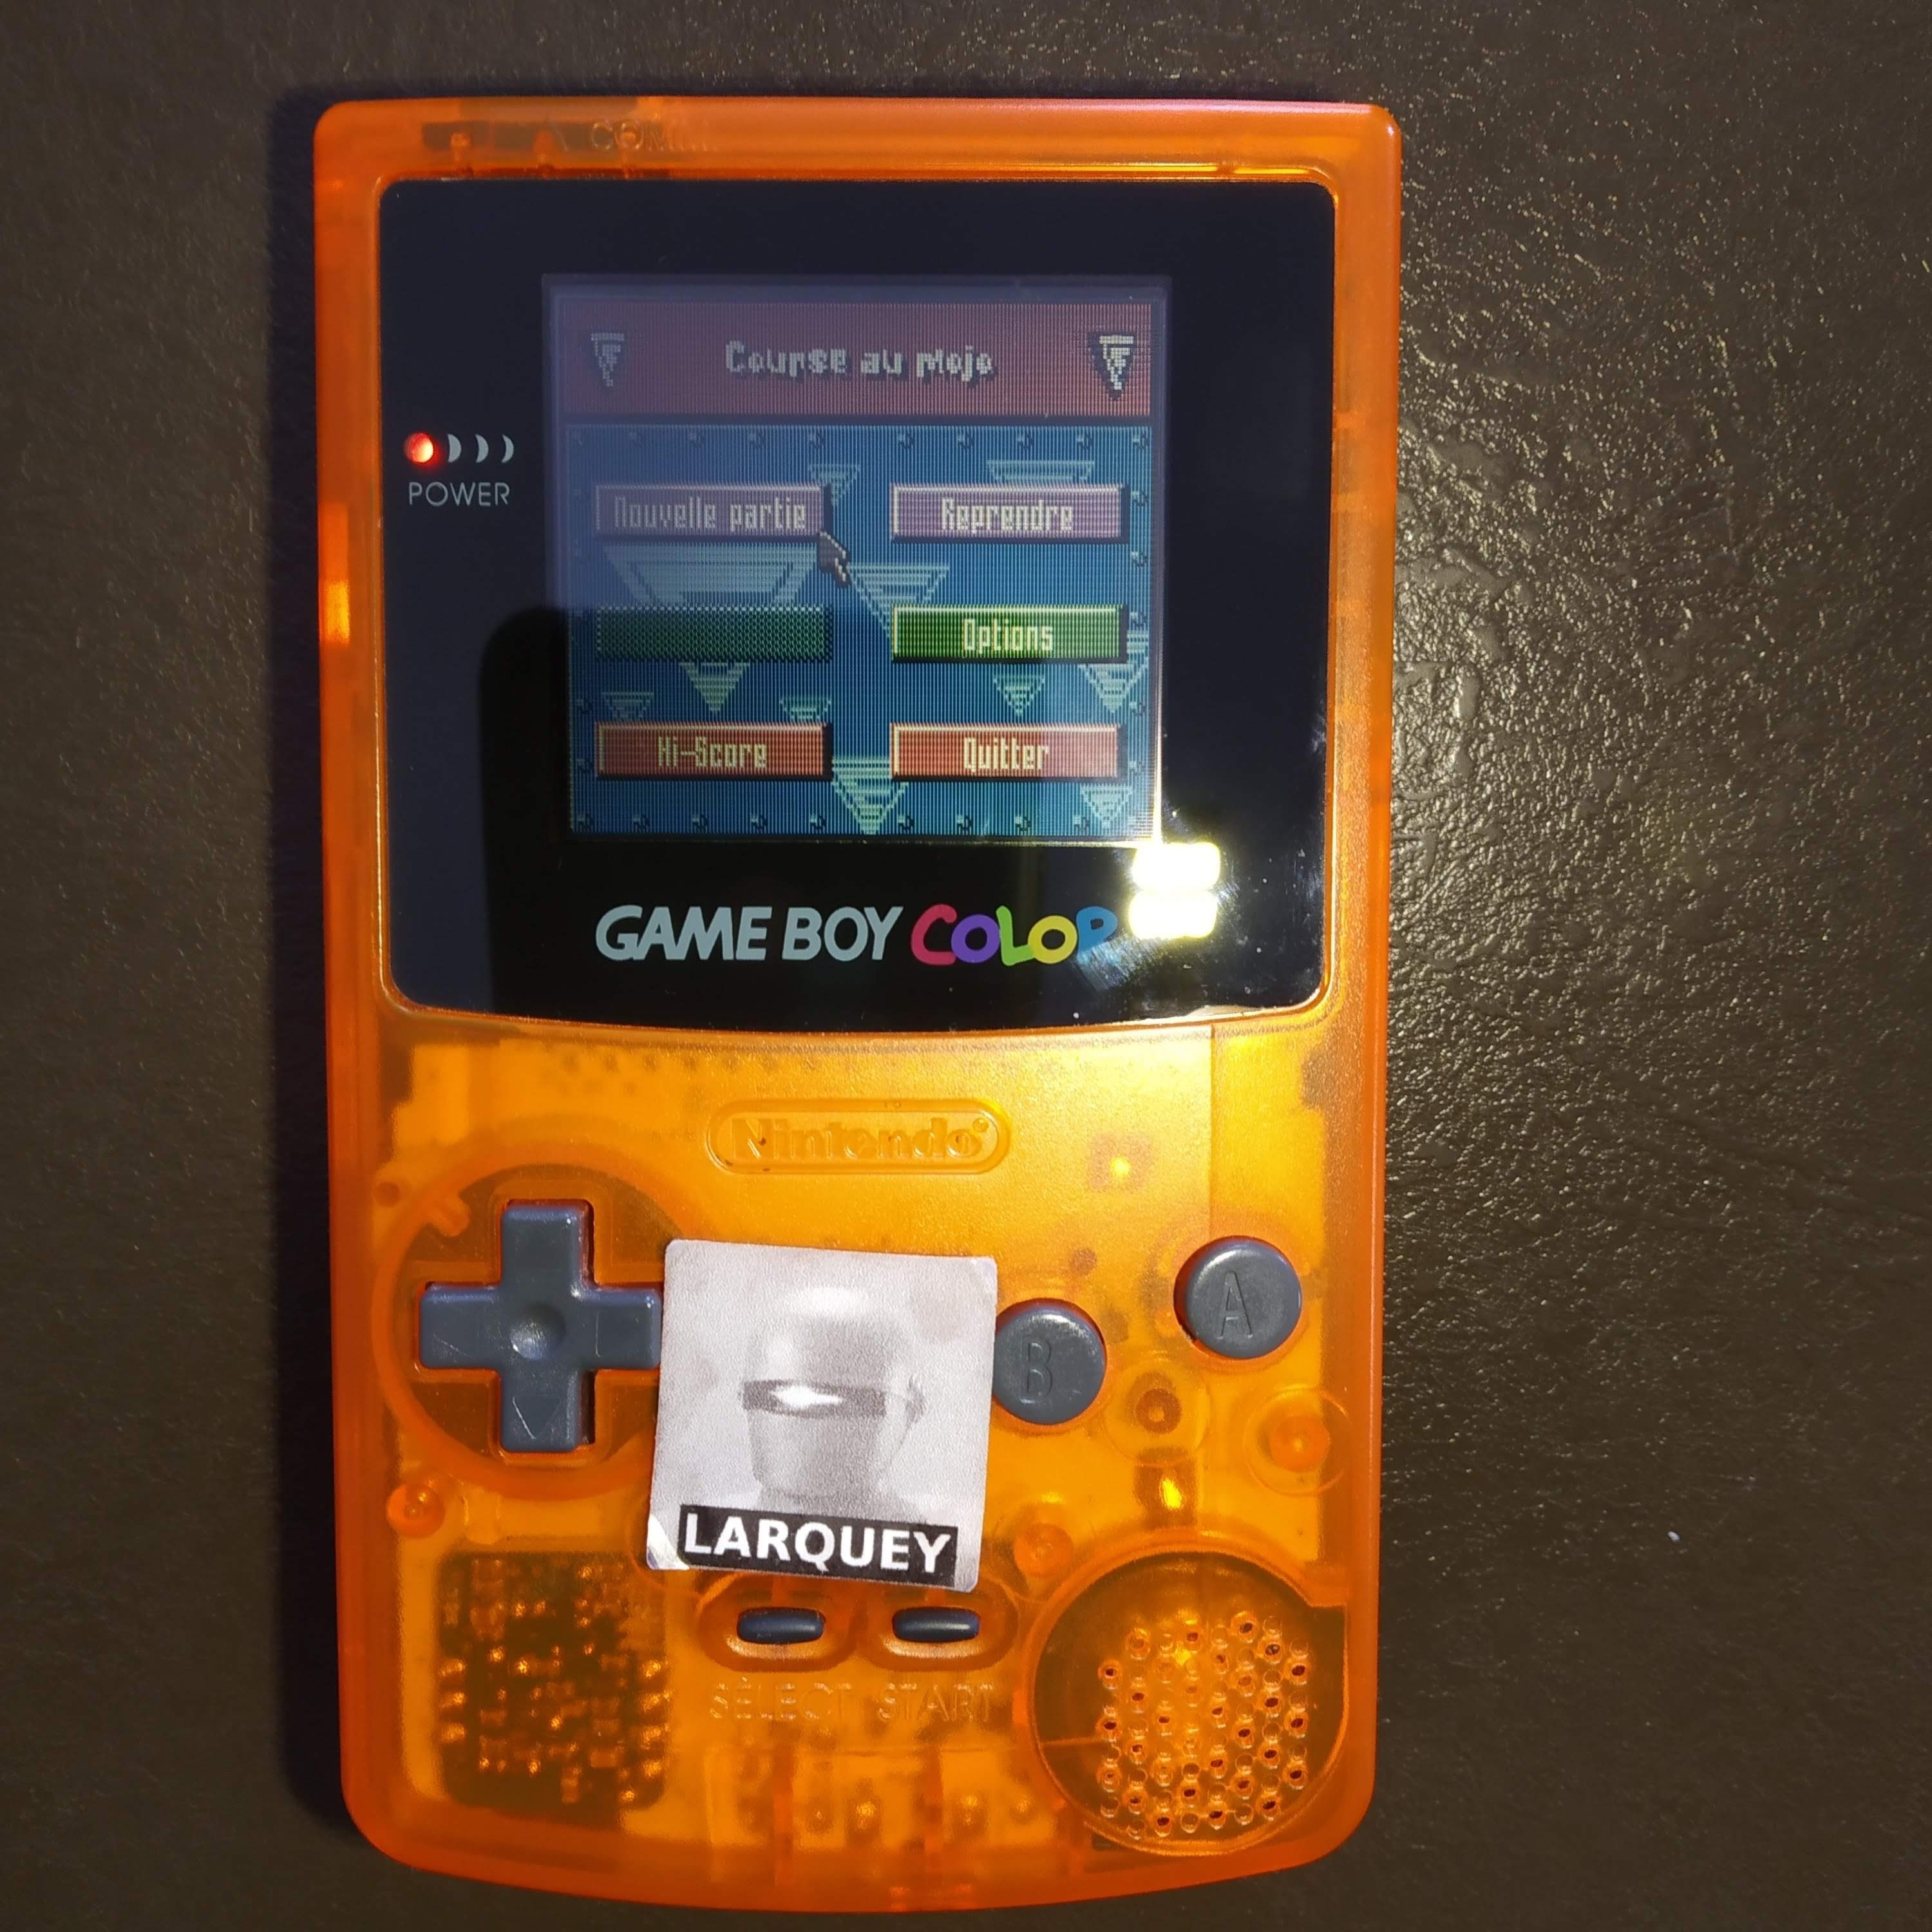 Larquey: Austin Powers Welcome To My Underground Lair: Mojo Maze (Game Boy Color) 14,570 points on 2020-07-29 04:21:11